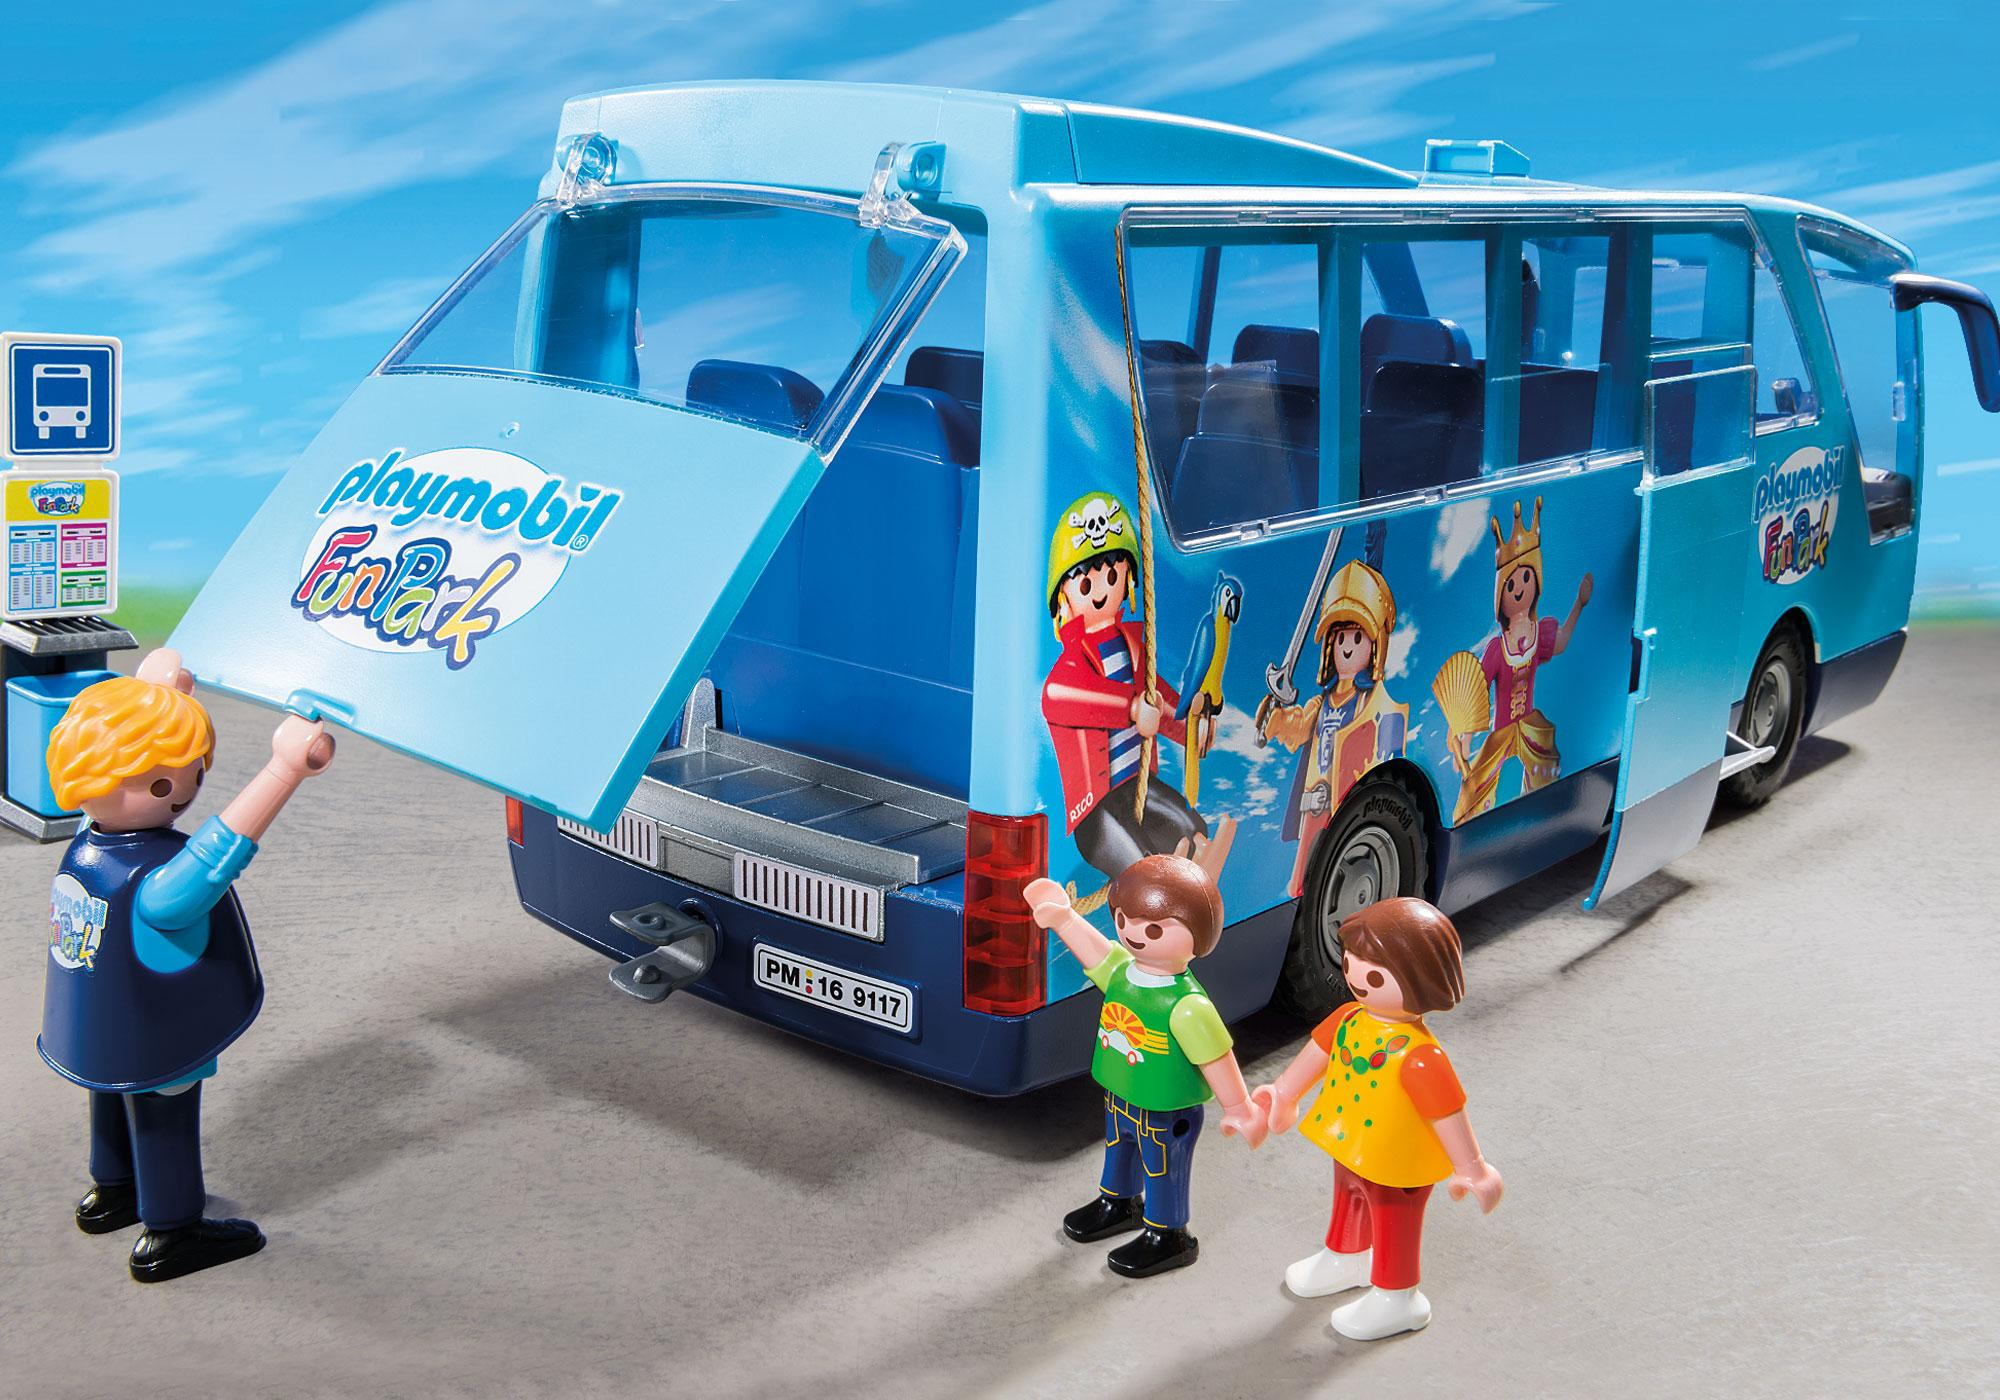 http://media.playmobil.com/i/playmobil/9117_product_extra3